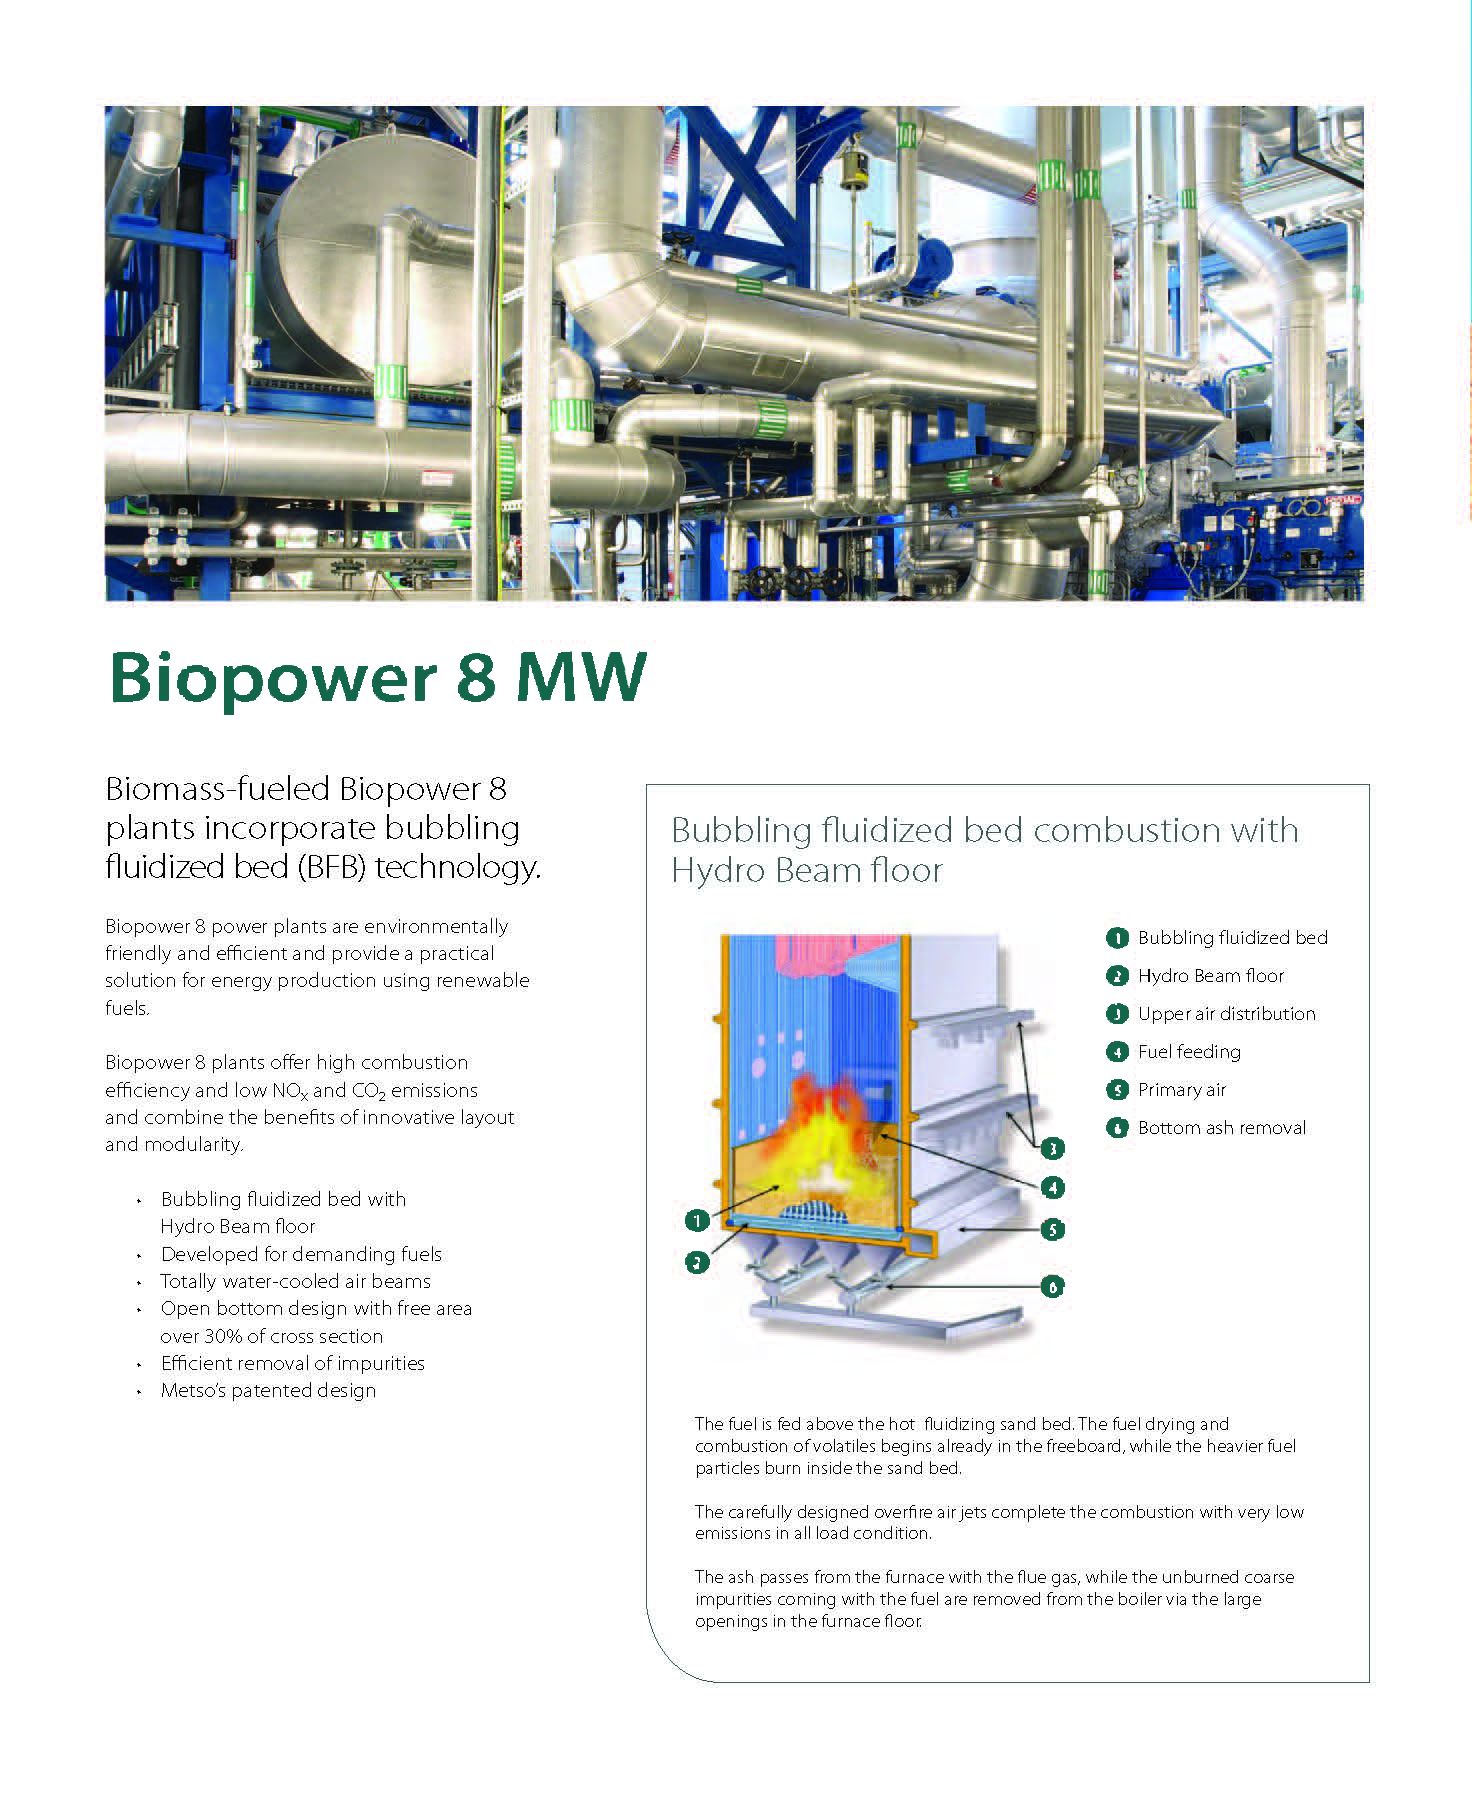 Biopower 5 and 8 presentation_Seite_13